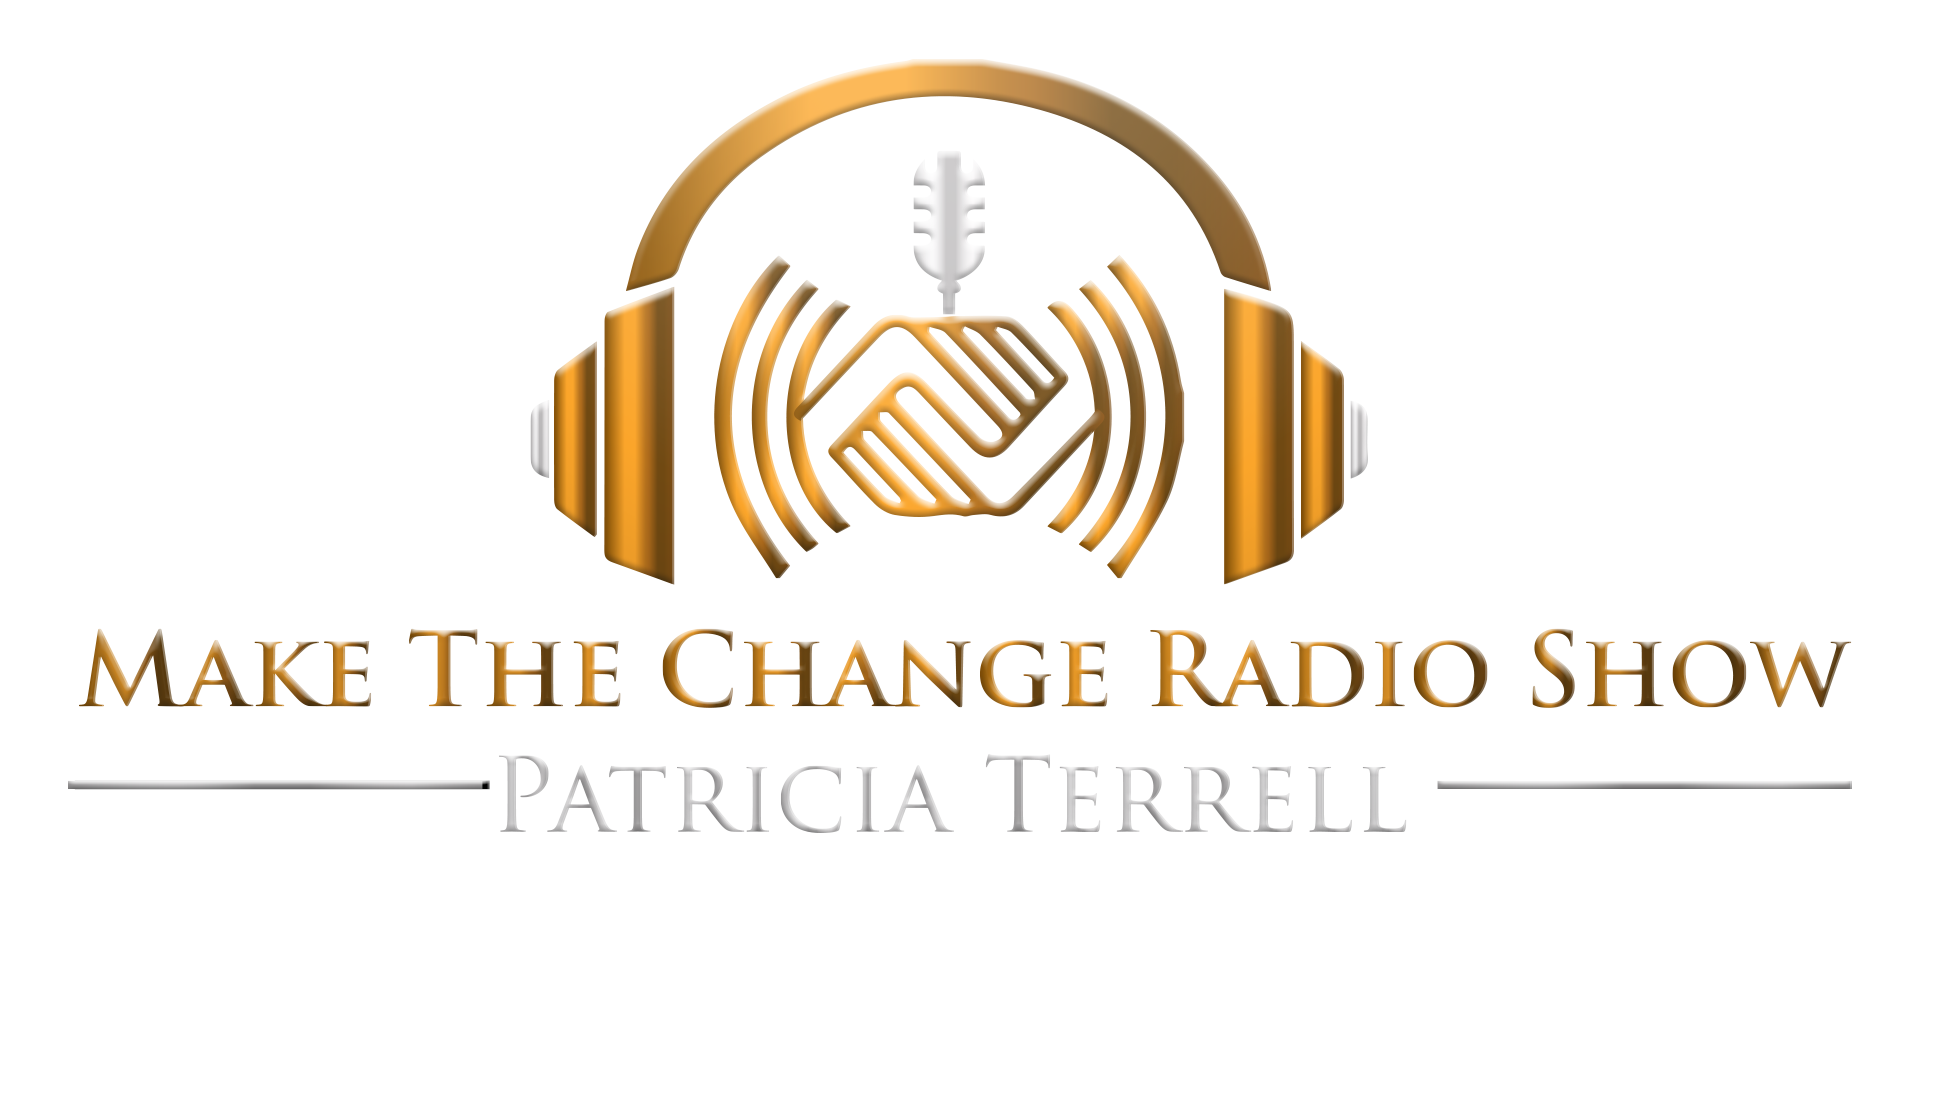 Make The Change Radio Show